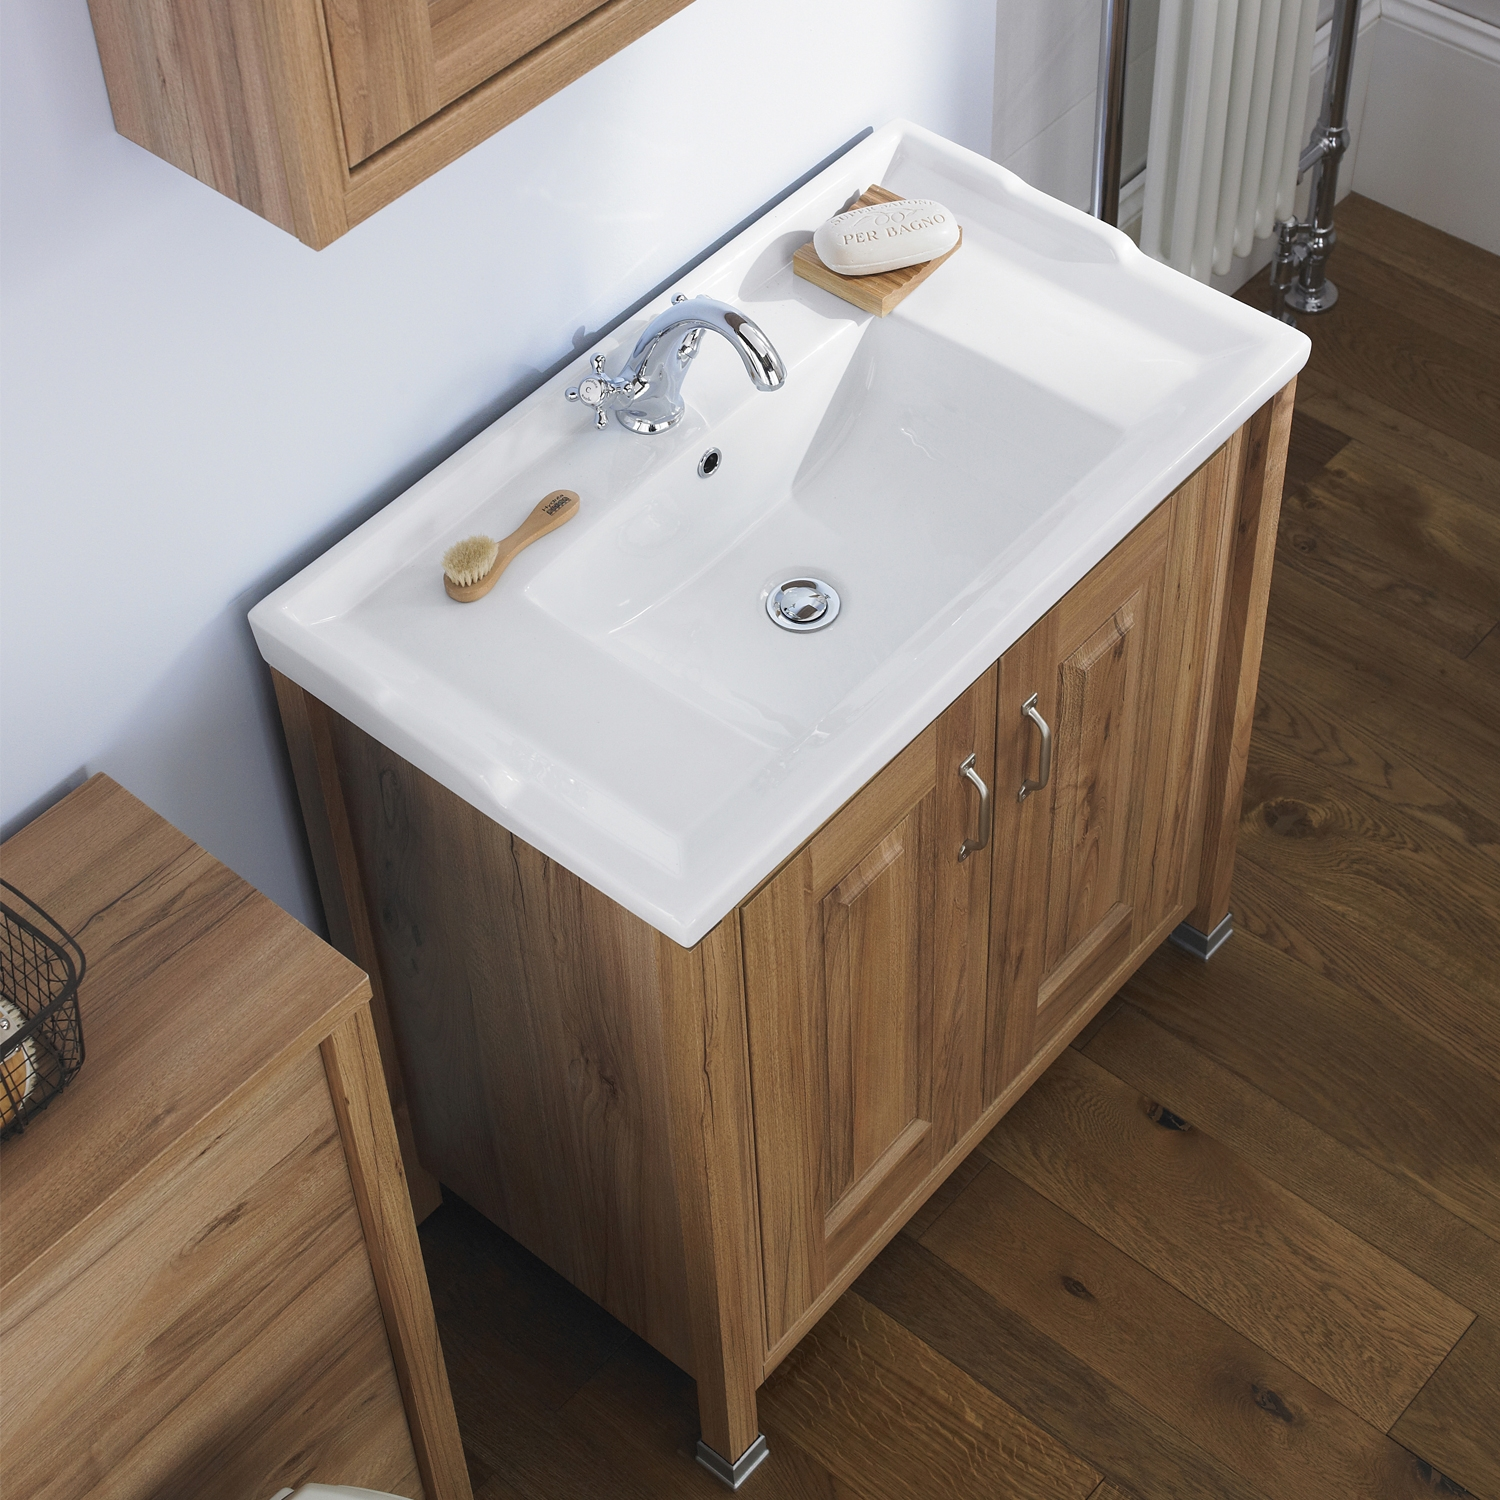 Hudson Reed Bathroom Vanity Unit & Basin 800mm Wide 1 Tap Hole, Natural Walnut